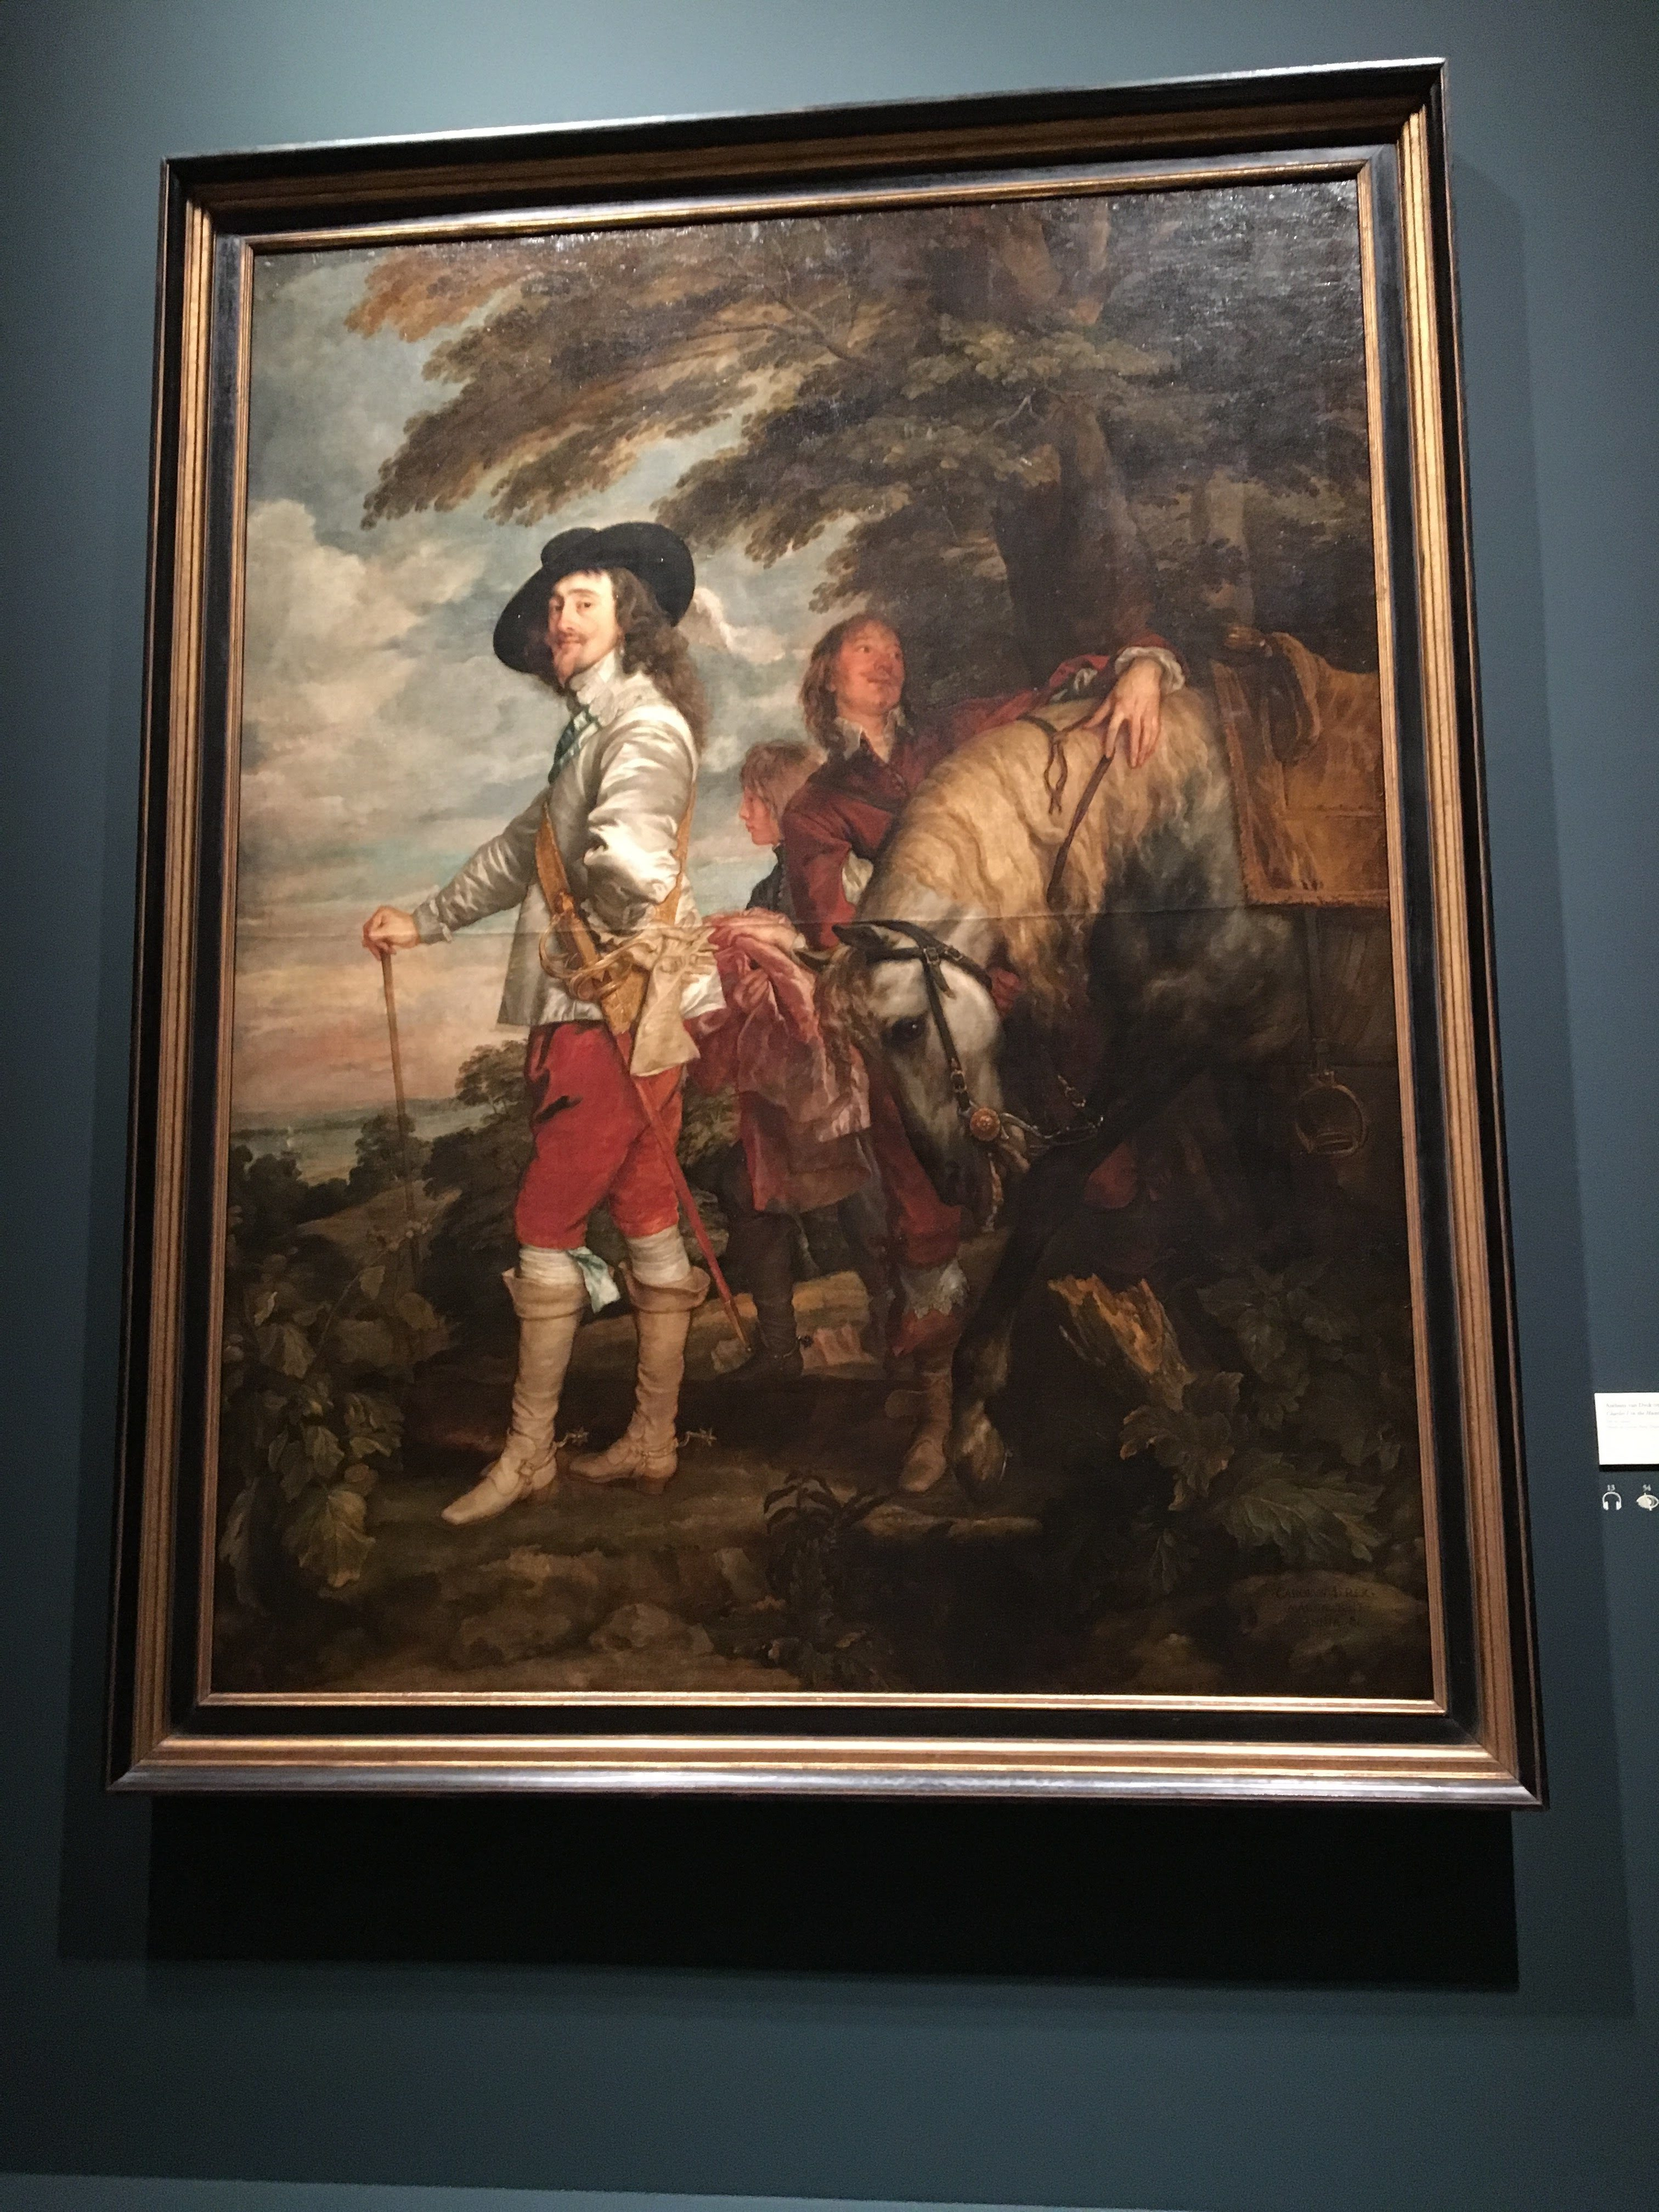 Anthony van Dyck, Charles I in the Hunting Field, 1636 (Musée du Louvre, Paris)